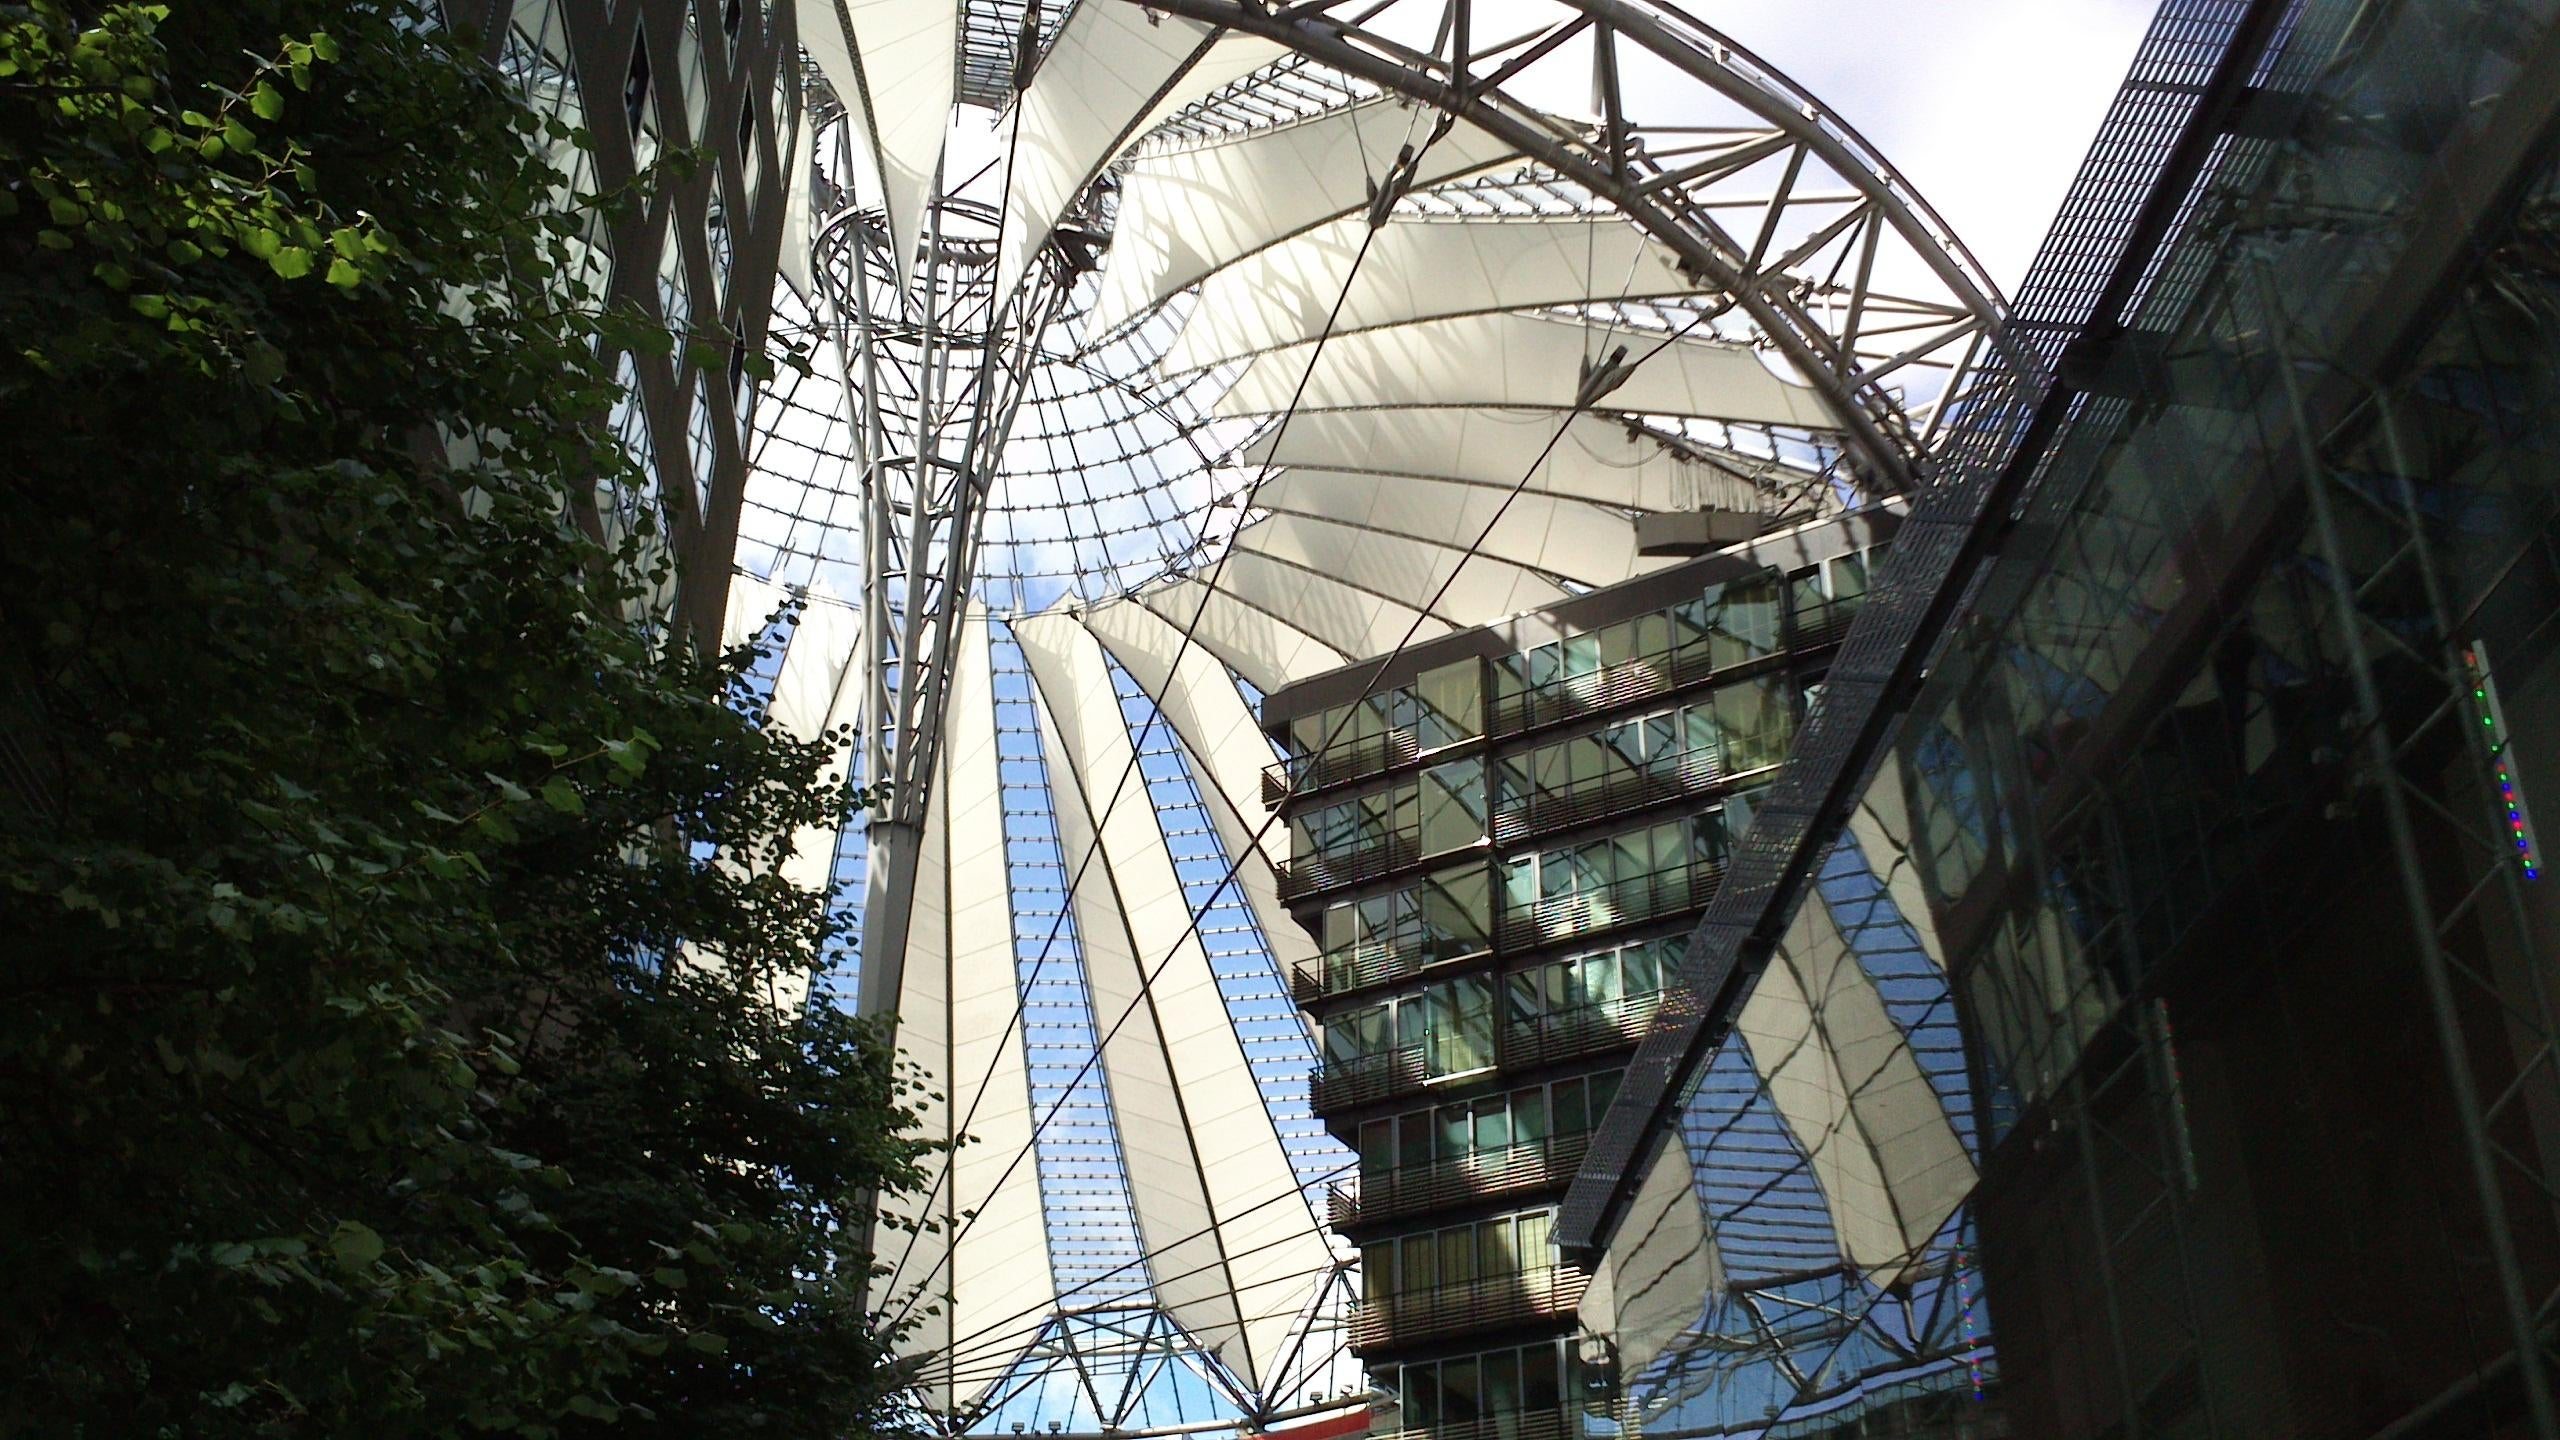 Parque de atracciones en Sony Center